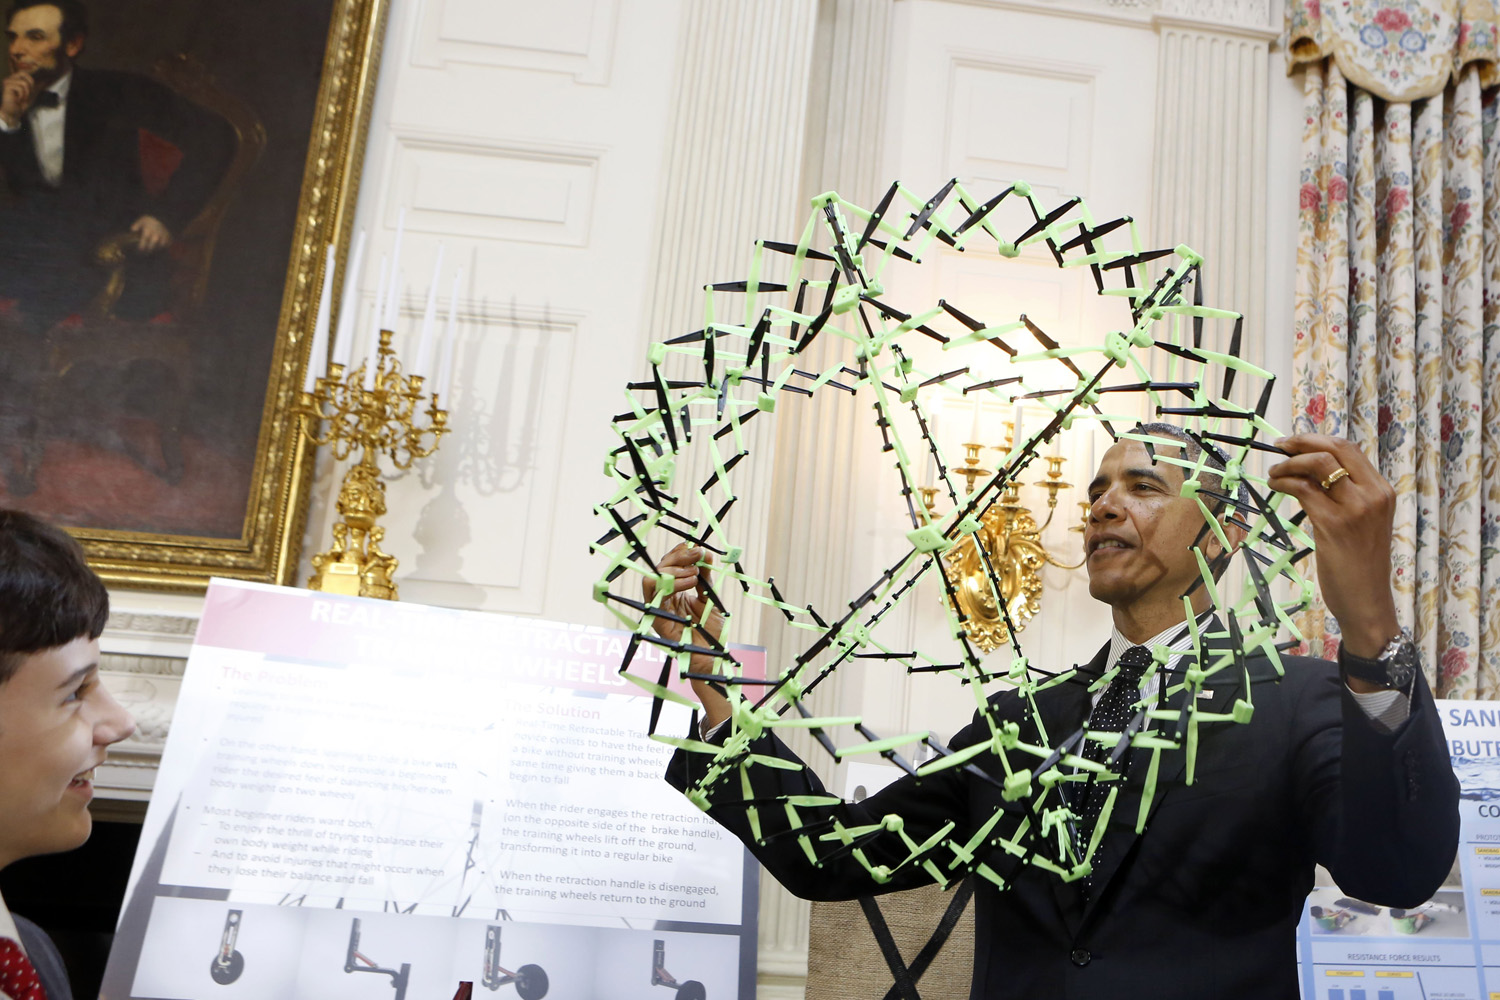 U.S. President Barack Obama looks at the project of Peyton Roberston (left) from Ft. Lauderdale, Fla., winner of the Discovery 3M Young Scientist, for his  Sandless sand bags  project at the 2014 White House Science Fair in Washington, D.C., May 27, 2014.